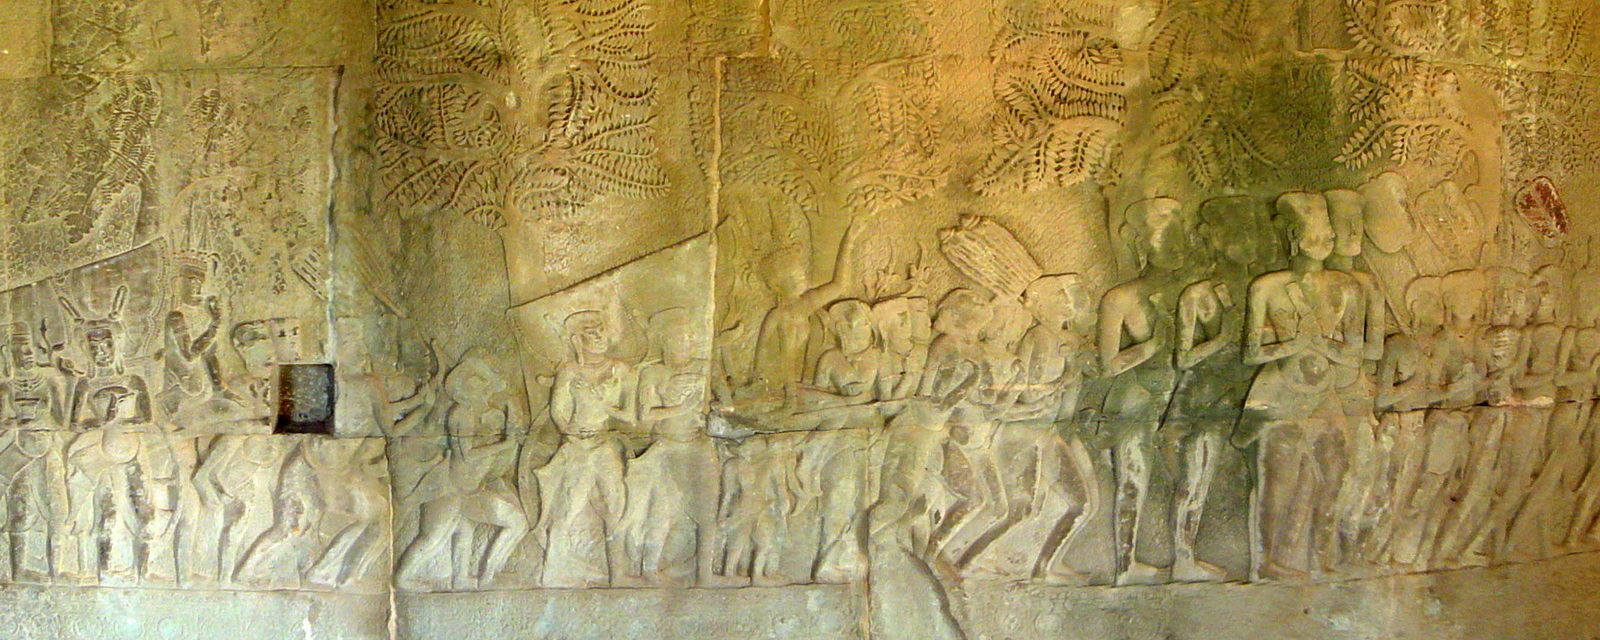 Angkor Wat Bas relief S Gallery W Wing Historic Procession 003